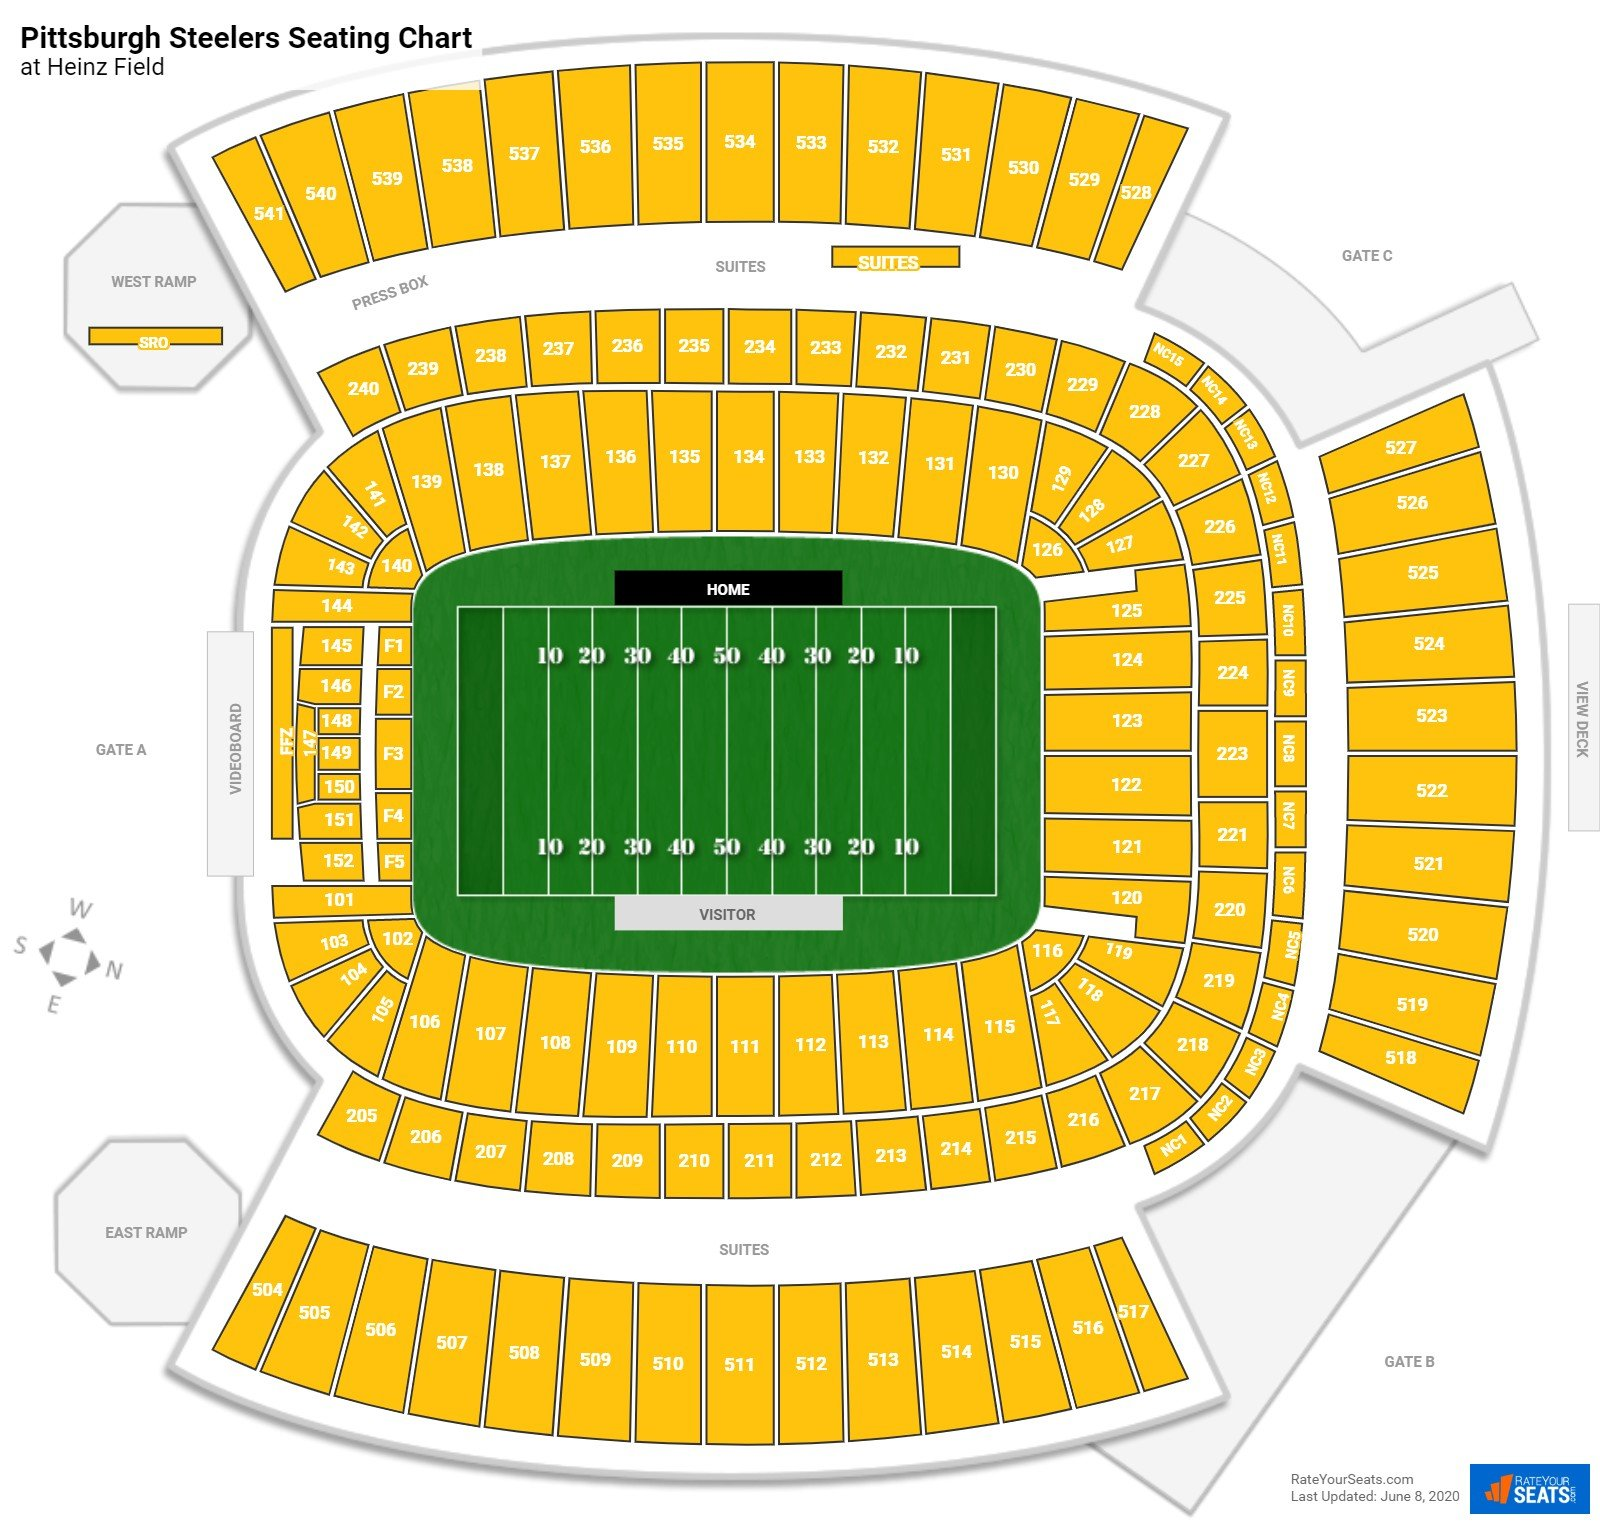 Pittsburgh Steelers Seating Chart